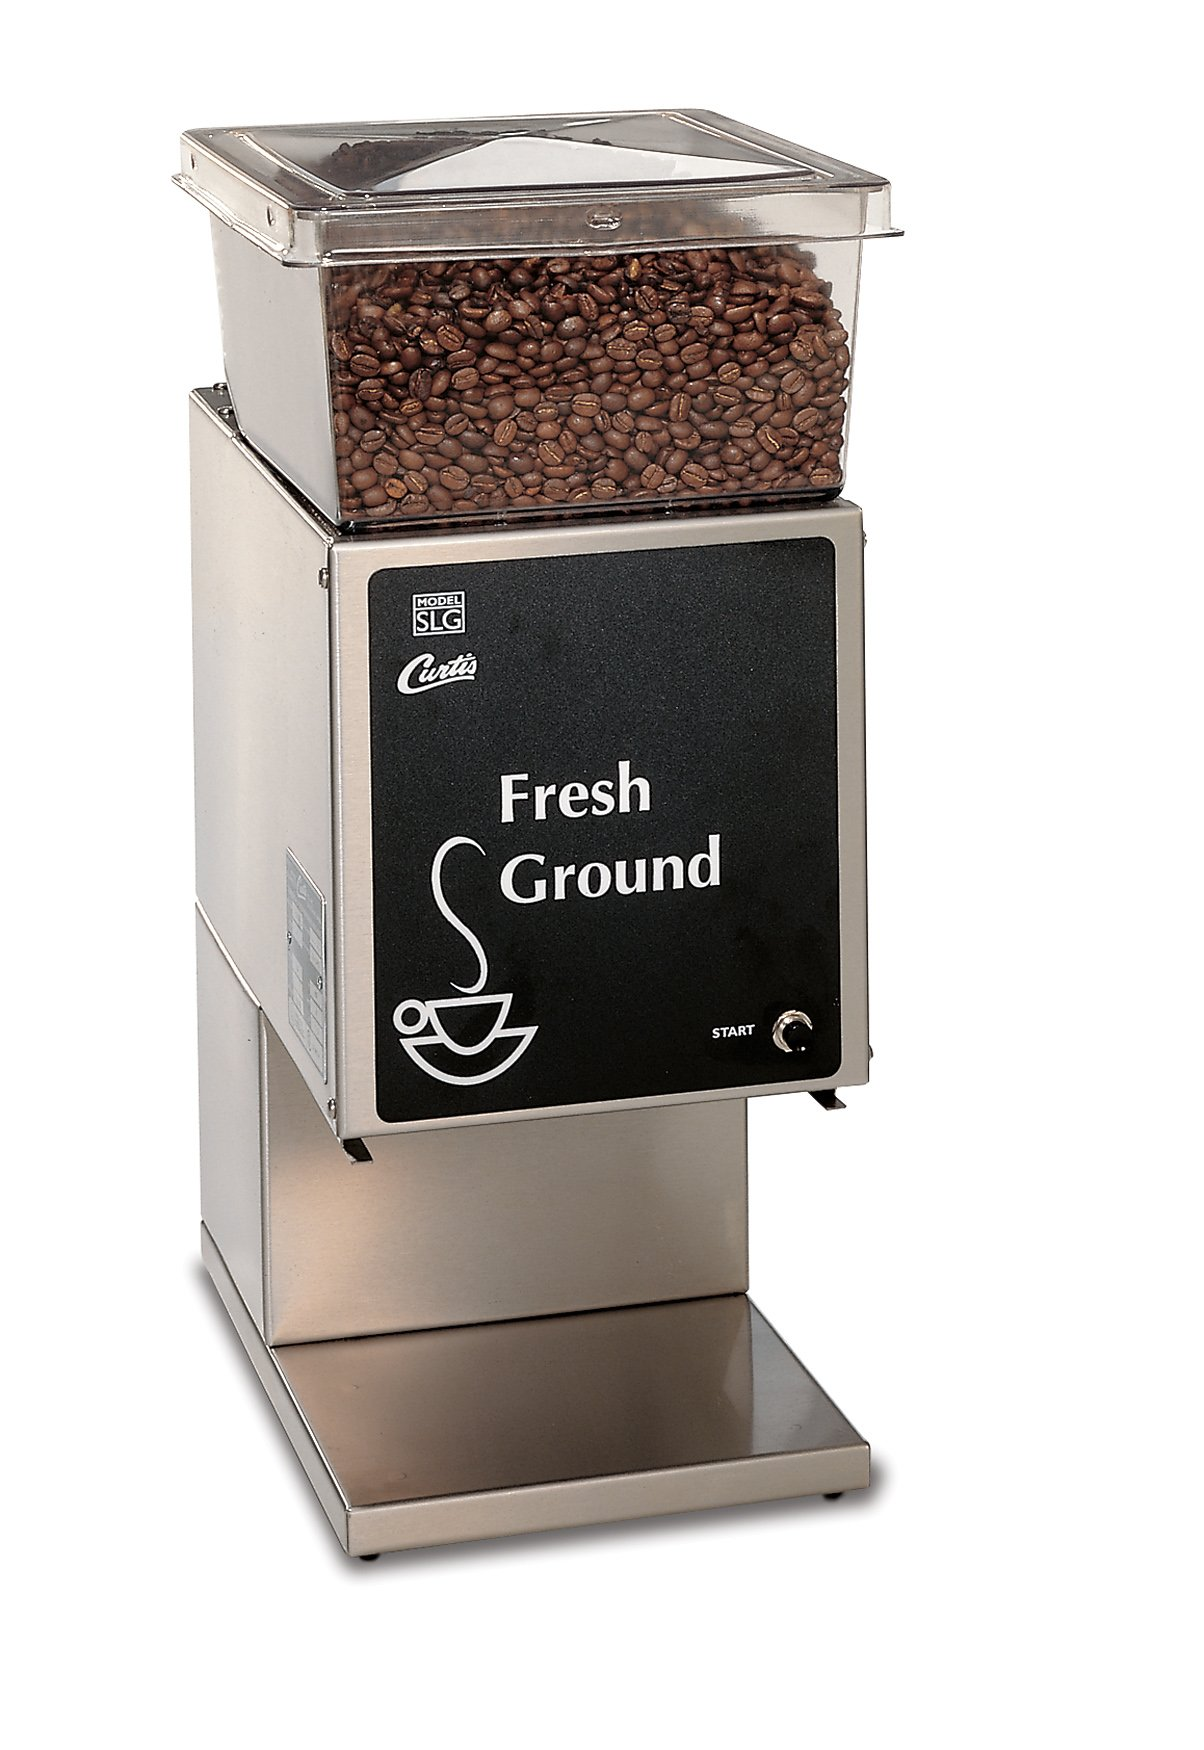 Wilbur Curtis Coffee Grinder 5.0 Lb Grinder With Single Hopper, Low Profile - Commercial Burr Grinder - SLG-10 (Each) by Wilbur Curtis